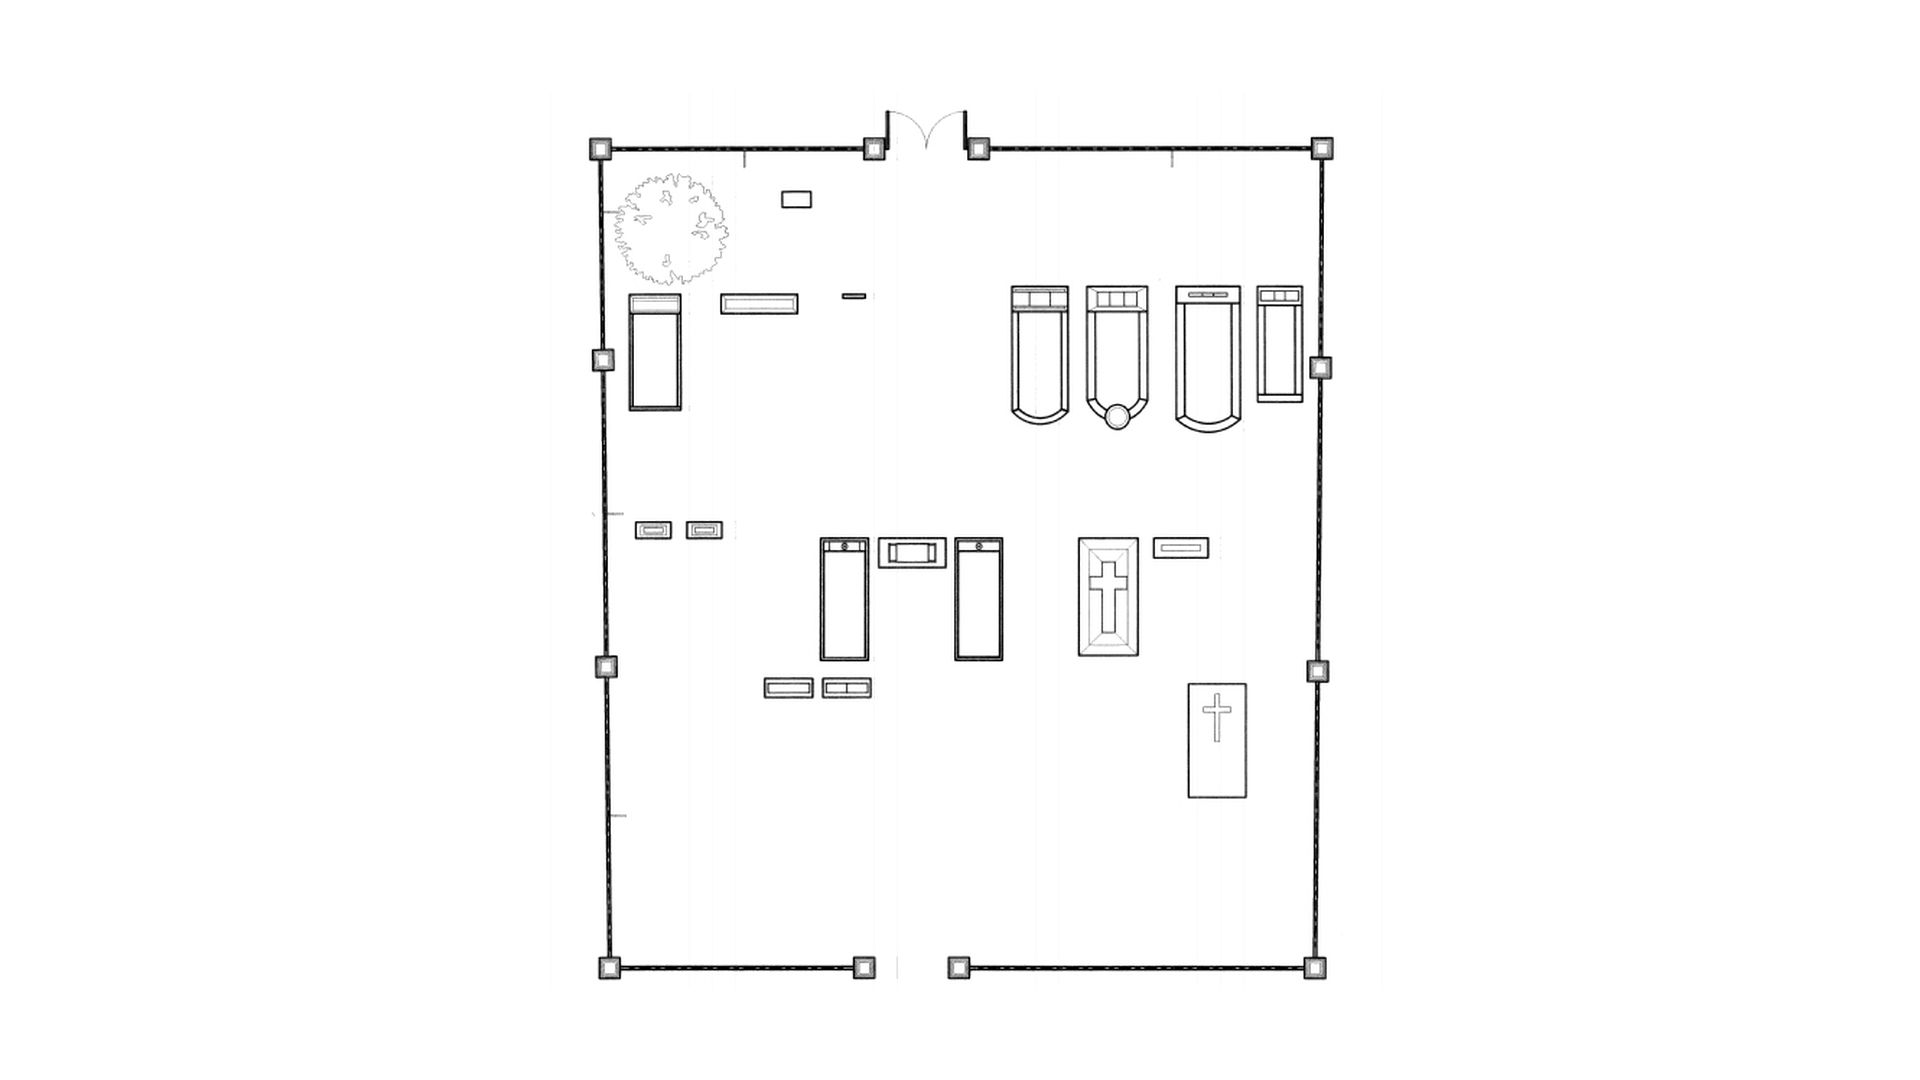 Electrical Wiring Residential Plans